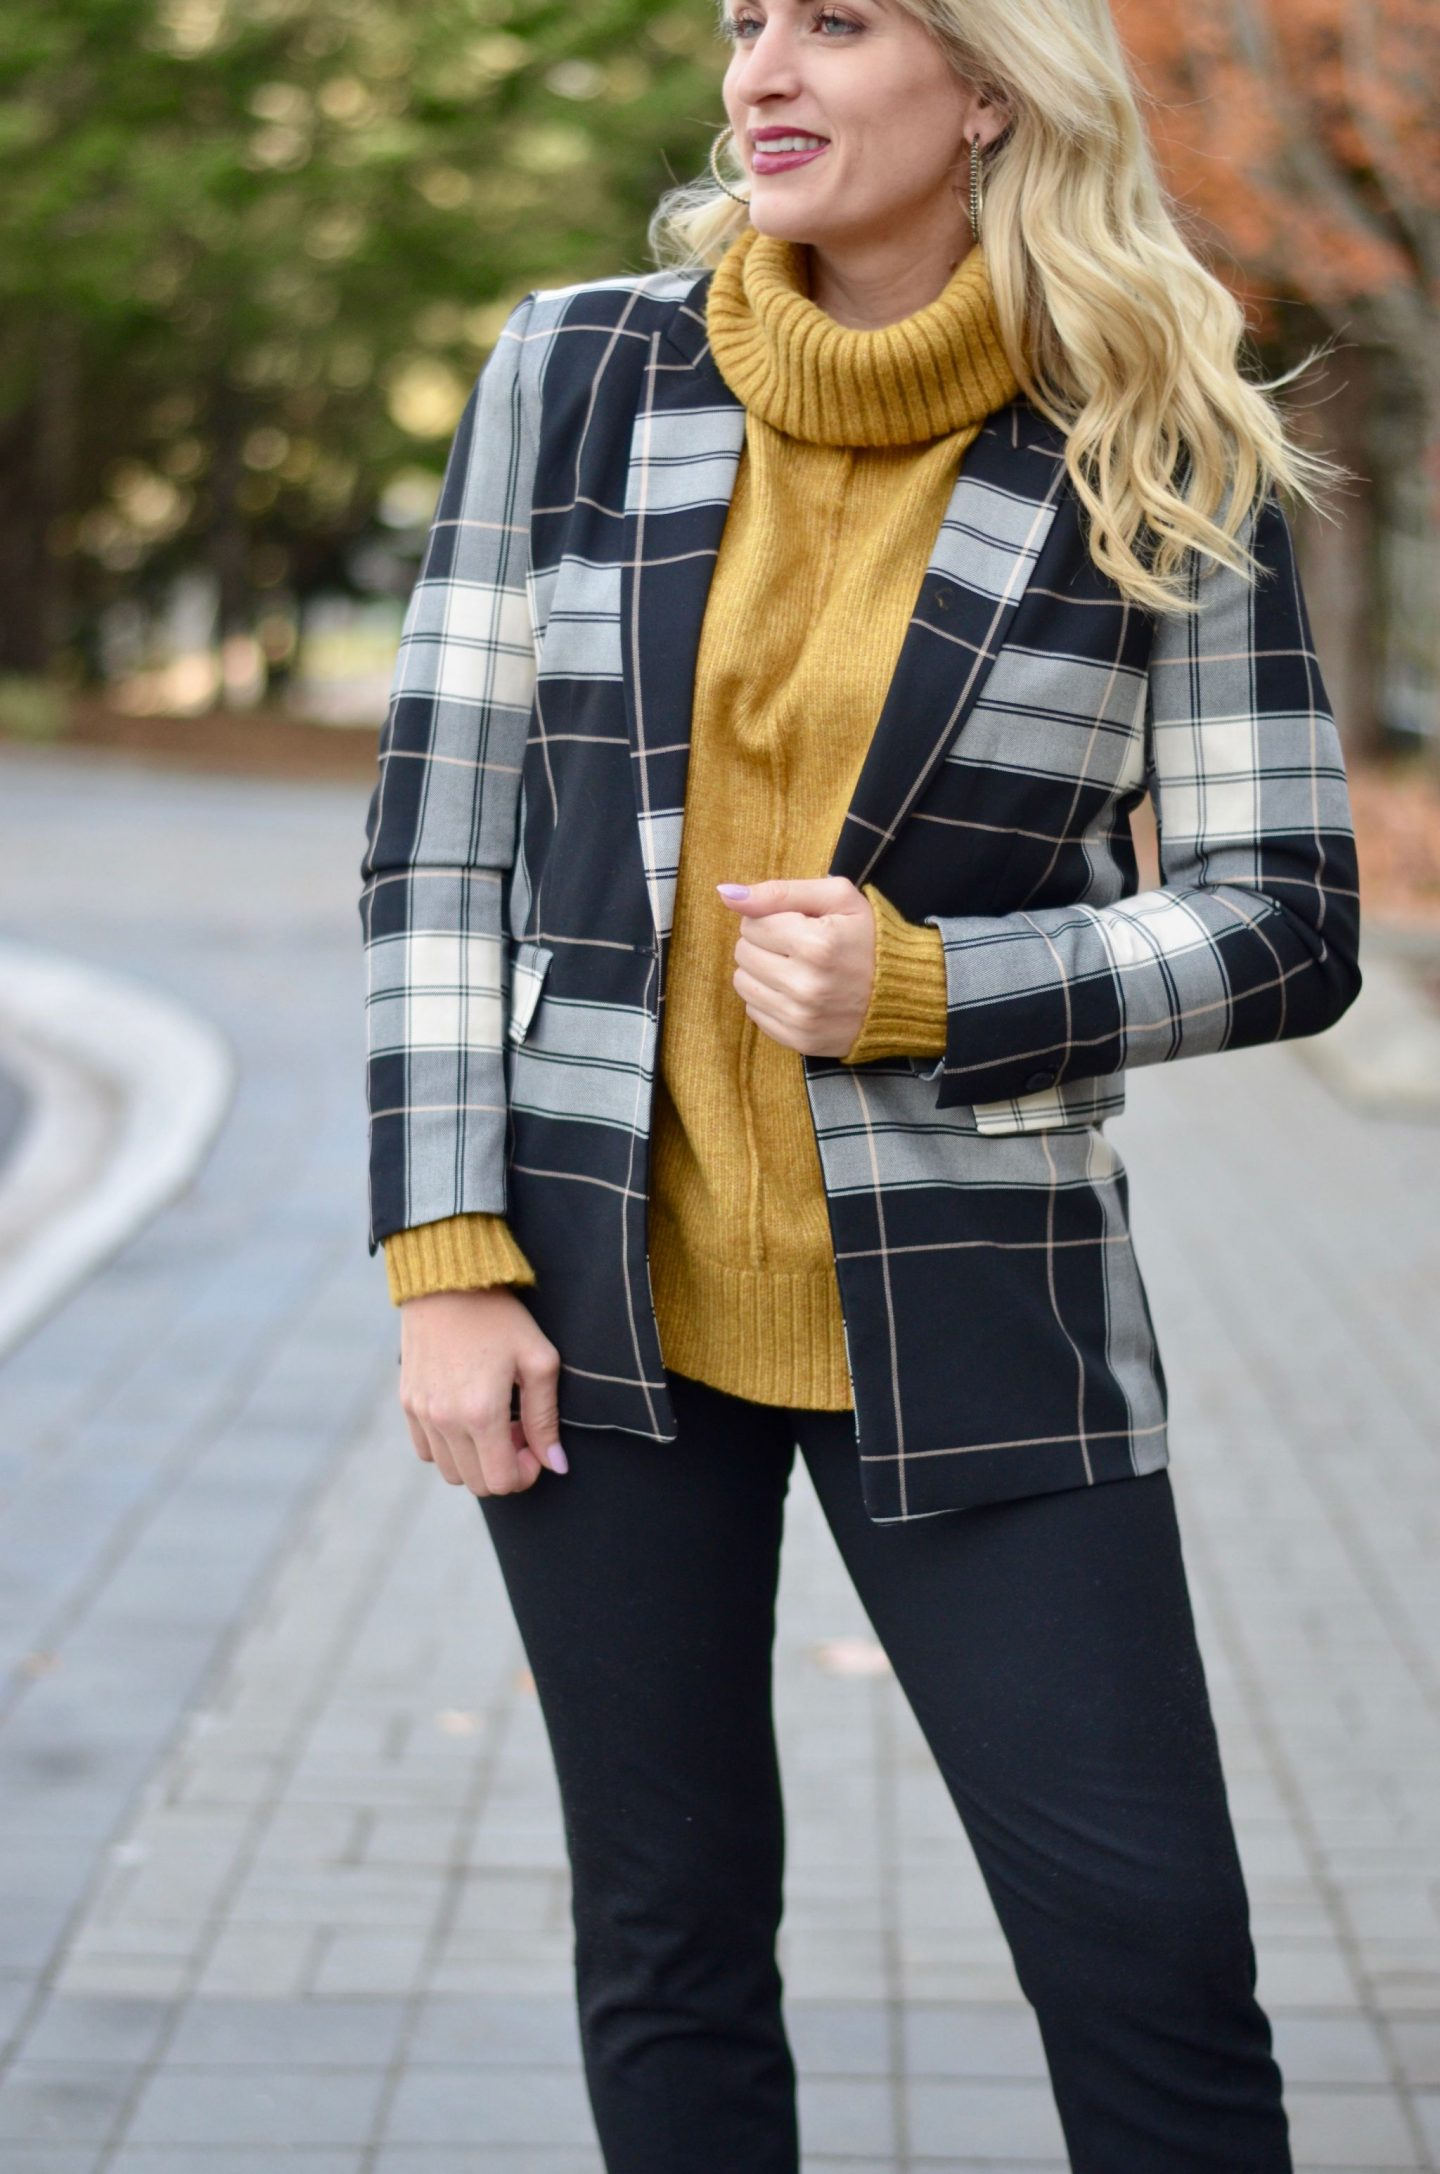 mustard yellow turtleneck and plaid blazer